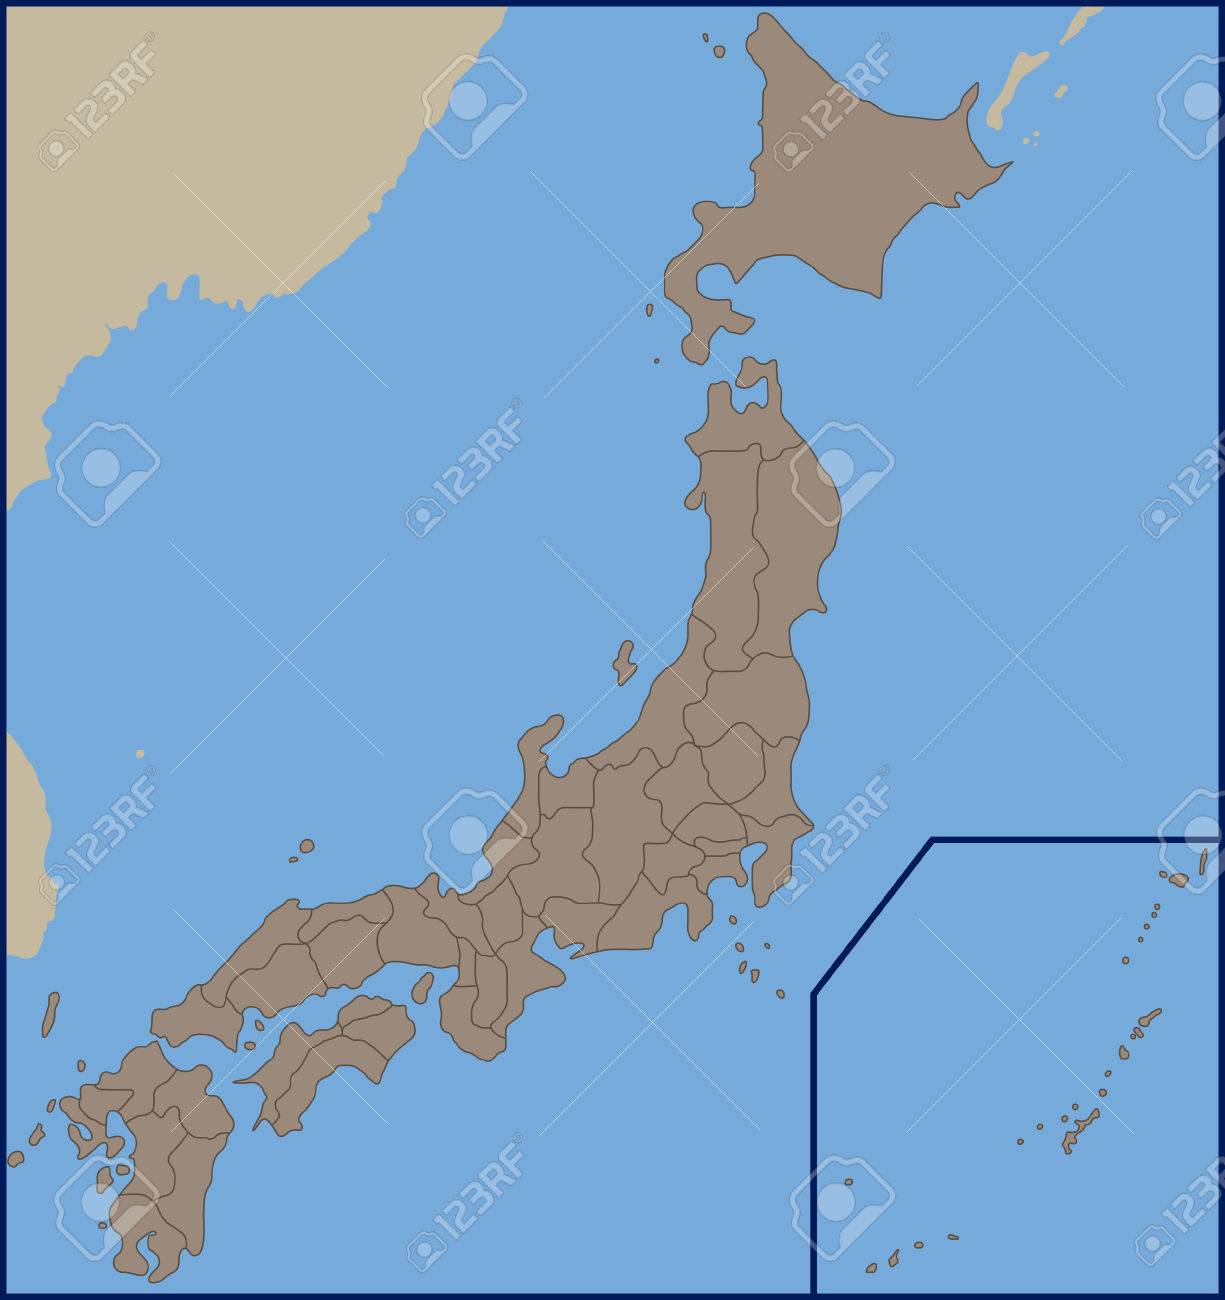 Empty political map of japan royalty free cliparts vectors and empty political map of japan stock vector 57221324 gumiabroncs Gallery